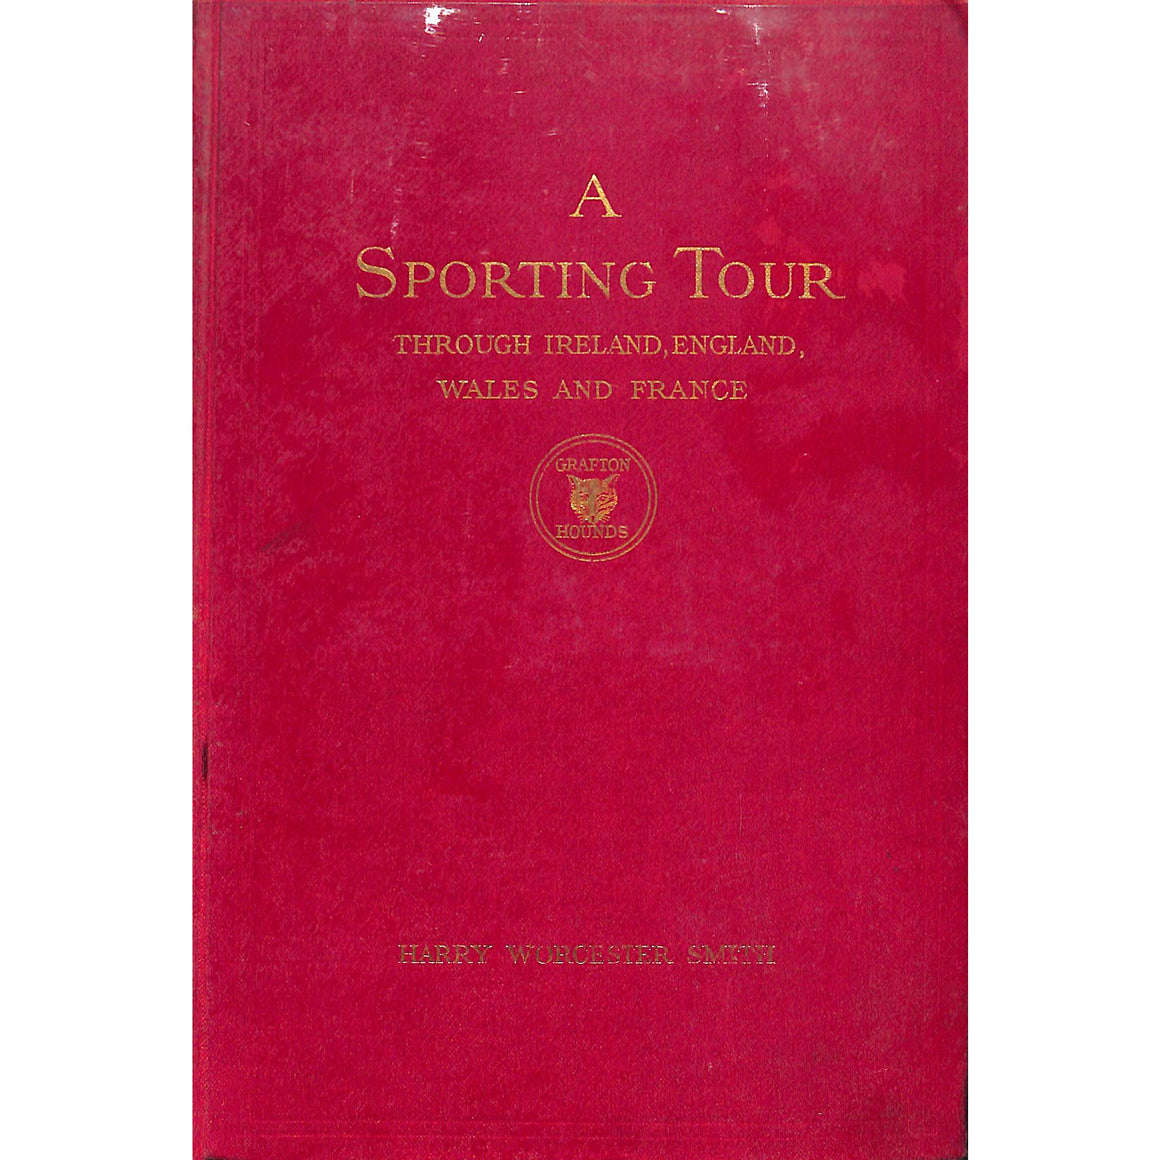 A Sporting Tour: Through Ireland, England, Wales, and France Volume I